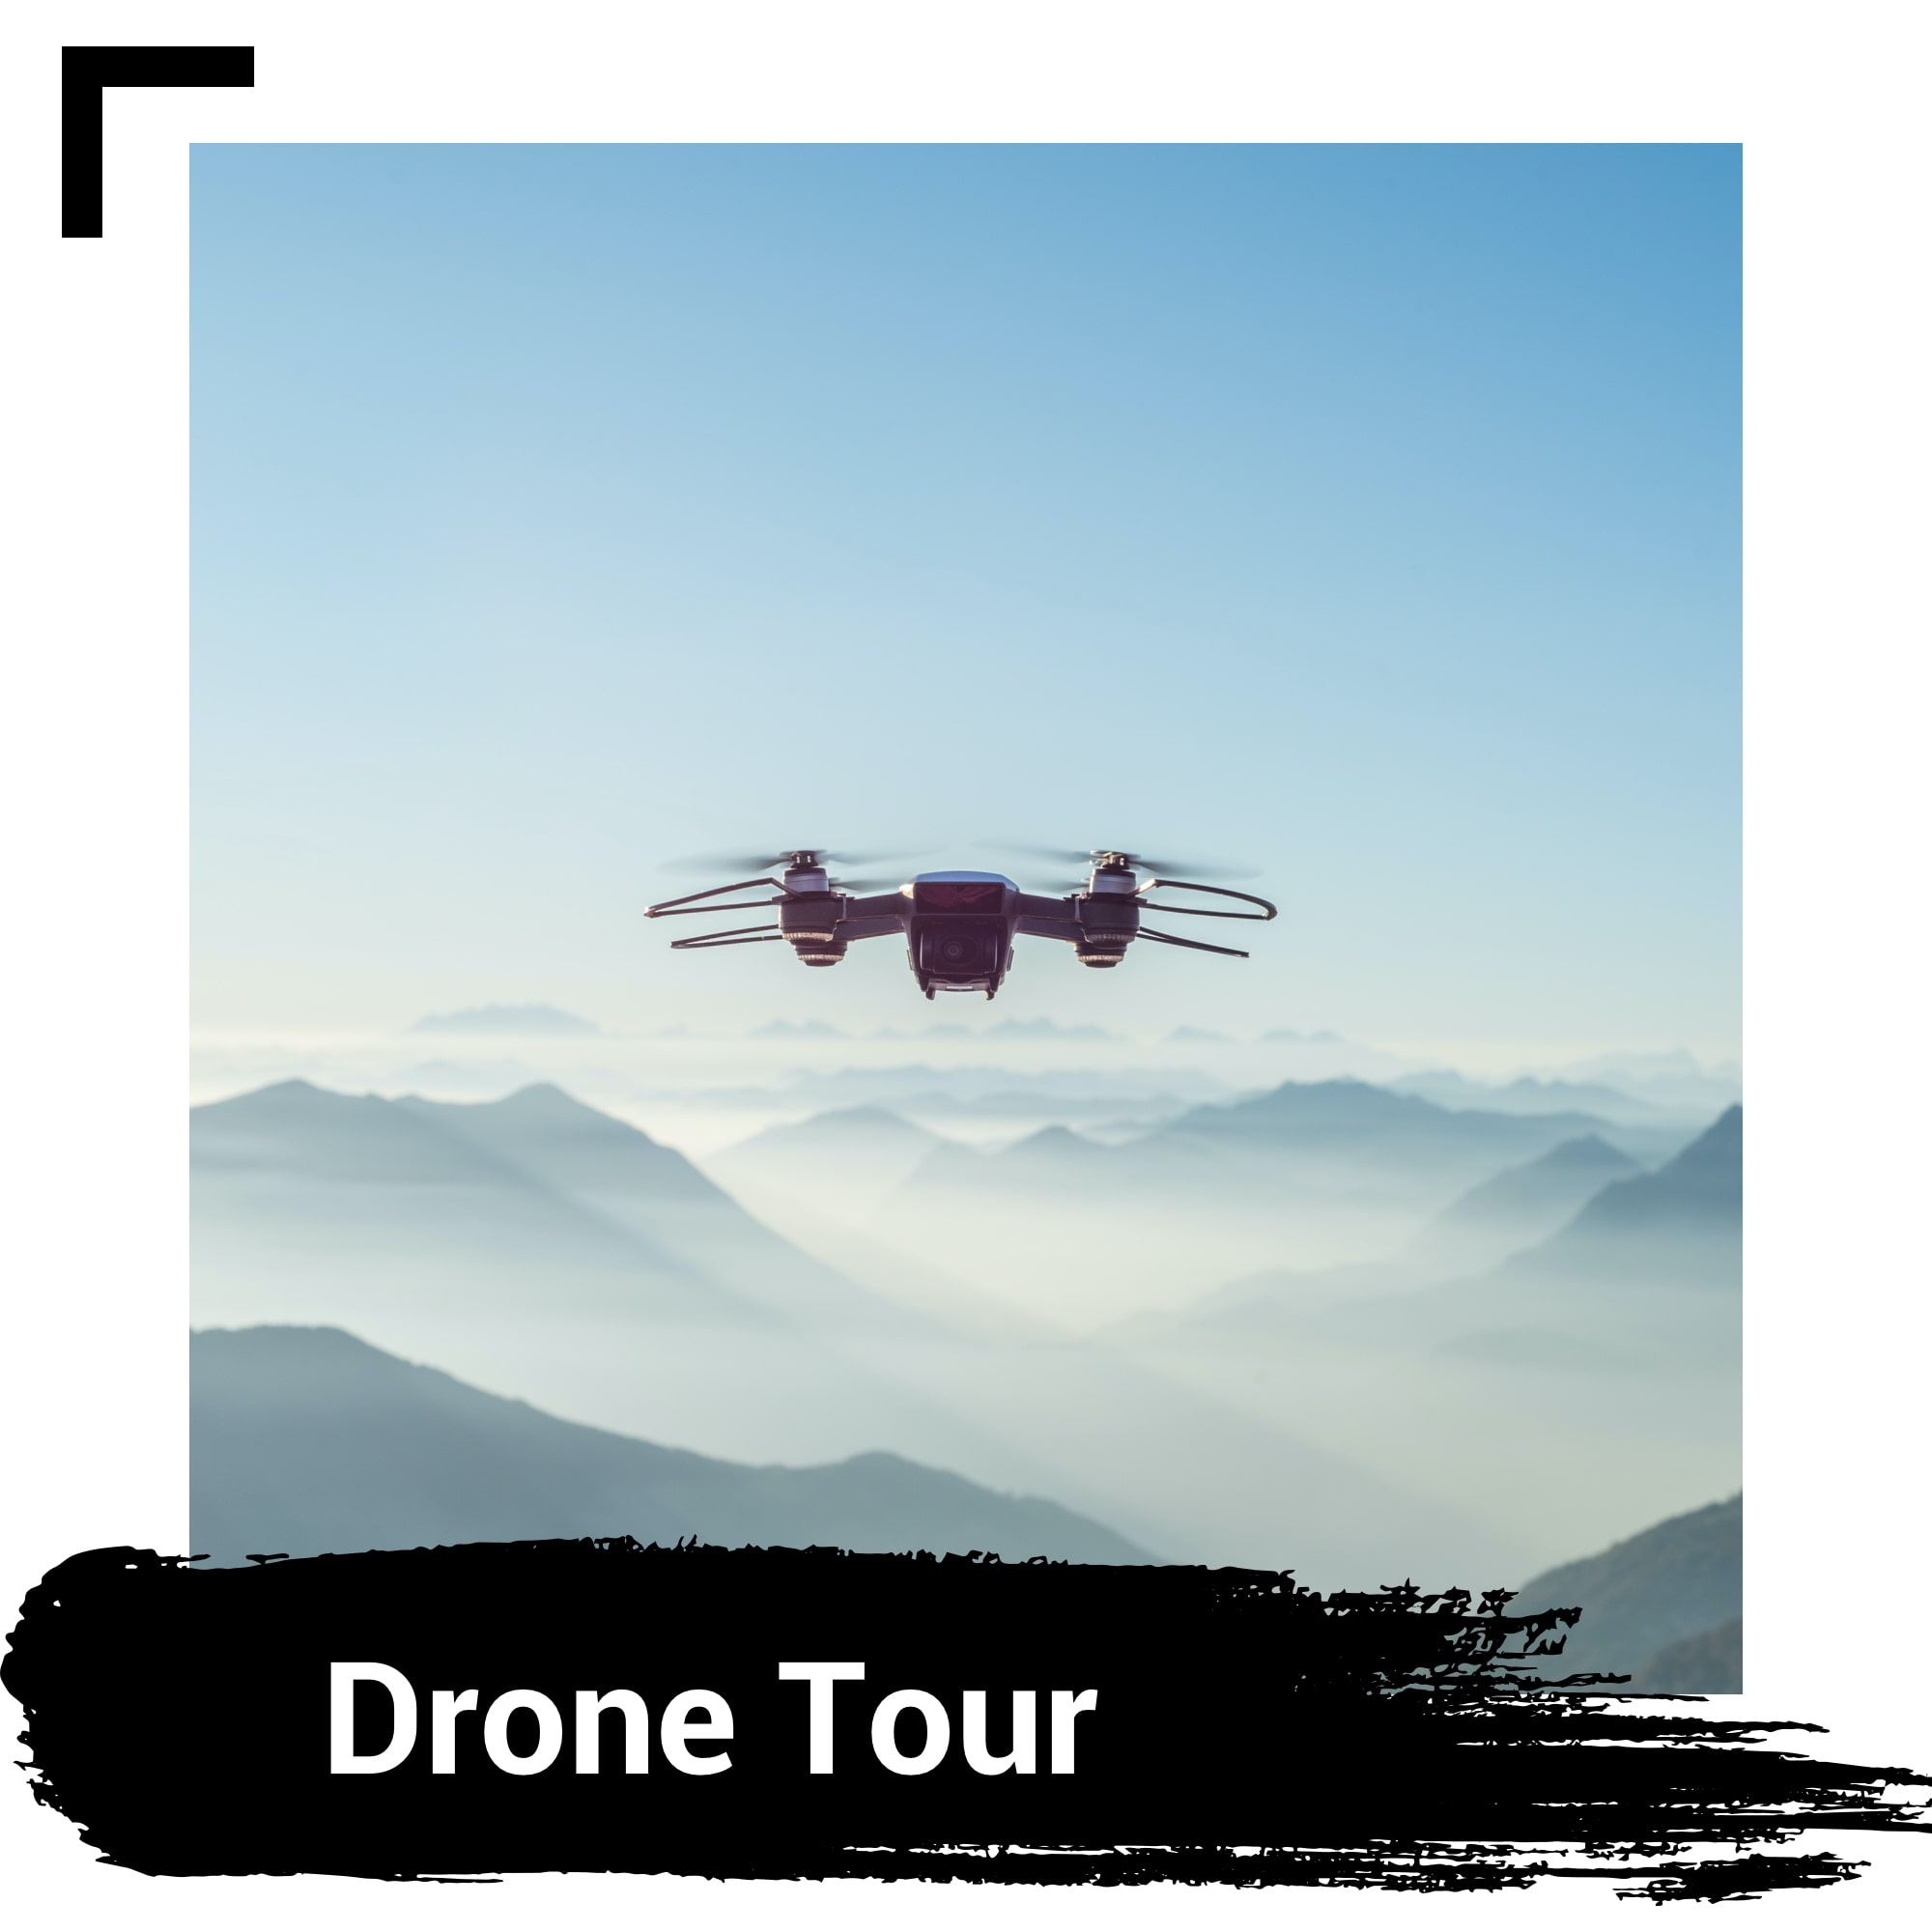 Drone Tours